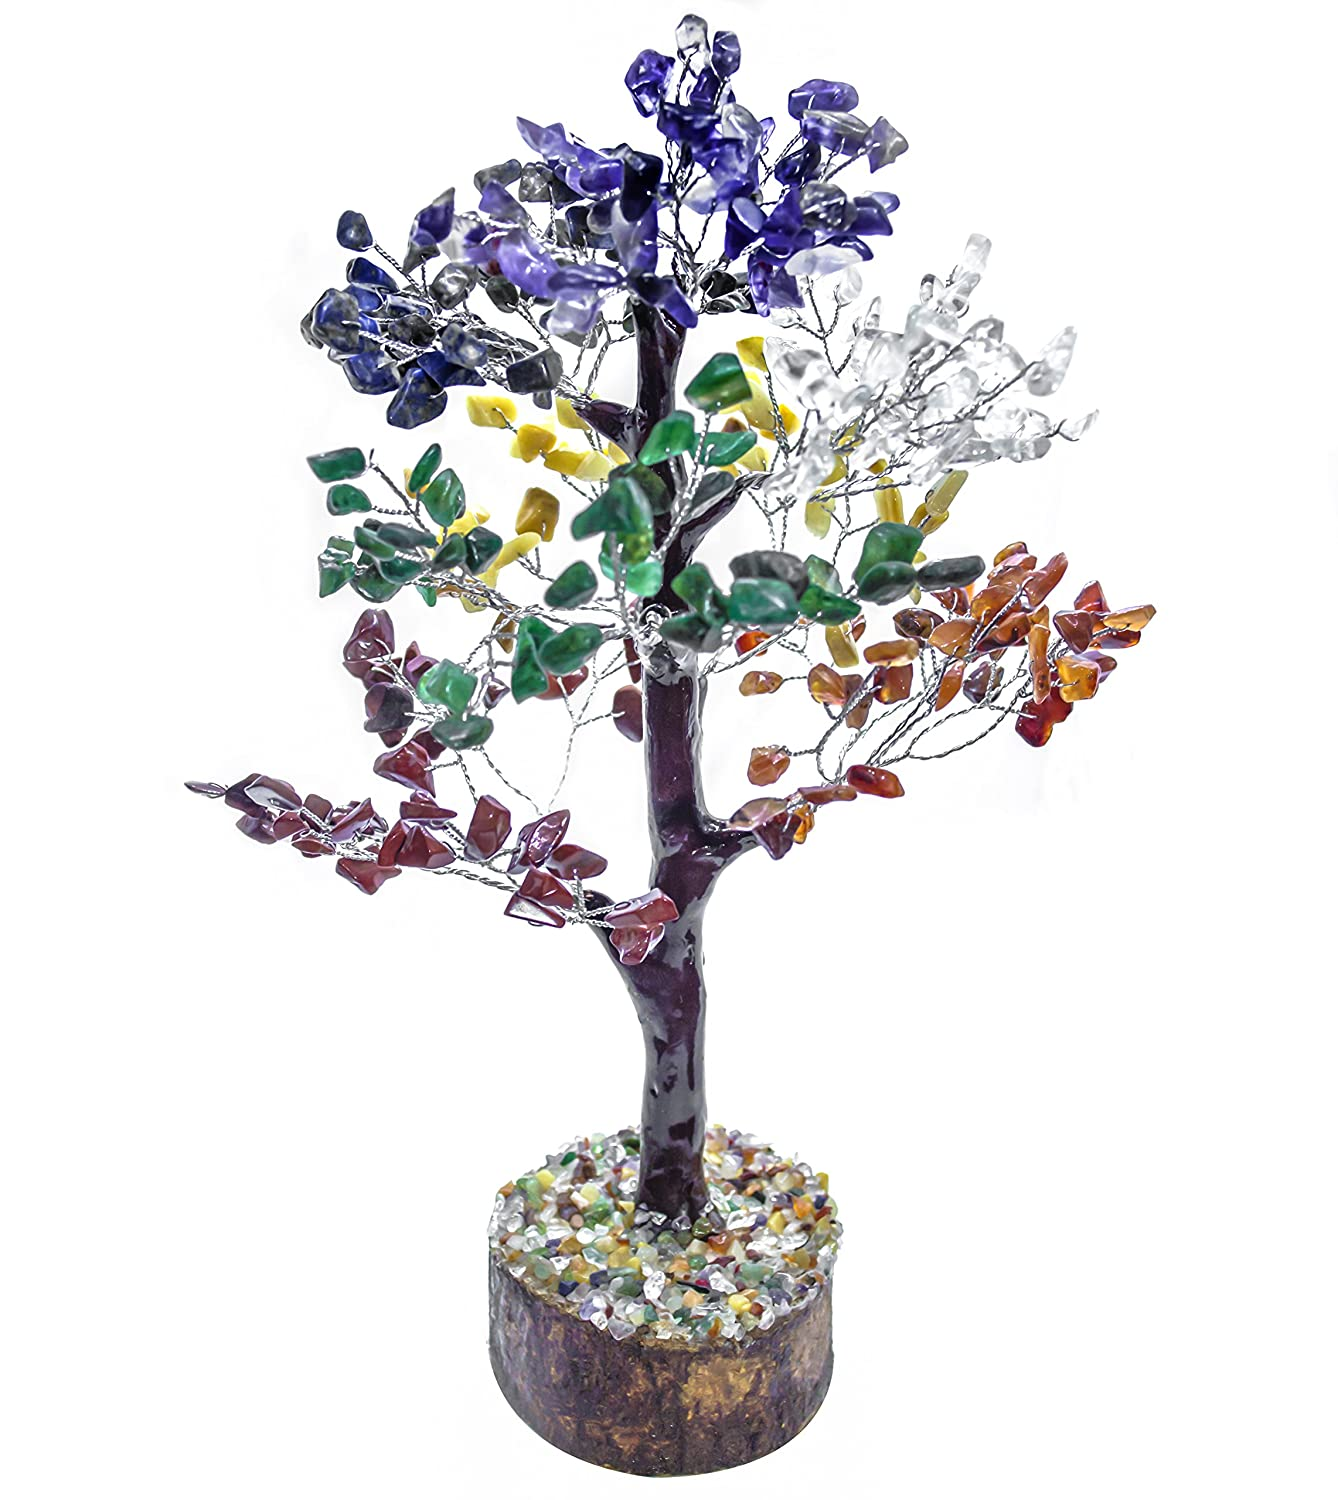 FASHIONZAADI Seven Chakra Natural Stone Feng Shui Bonsai Money Tree for Chakras Balancing Good Luck EMF Protection Healing Table Décor Health Prosperity Size 10-12 inch (Silver Wire)